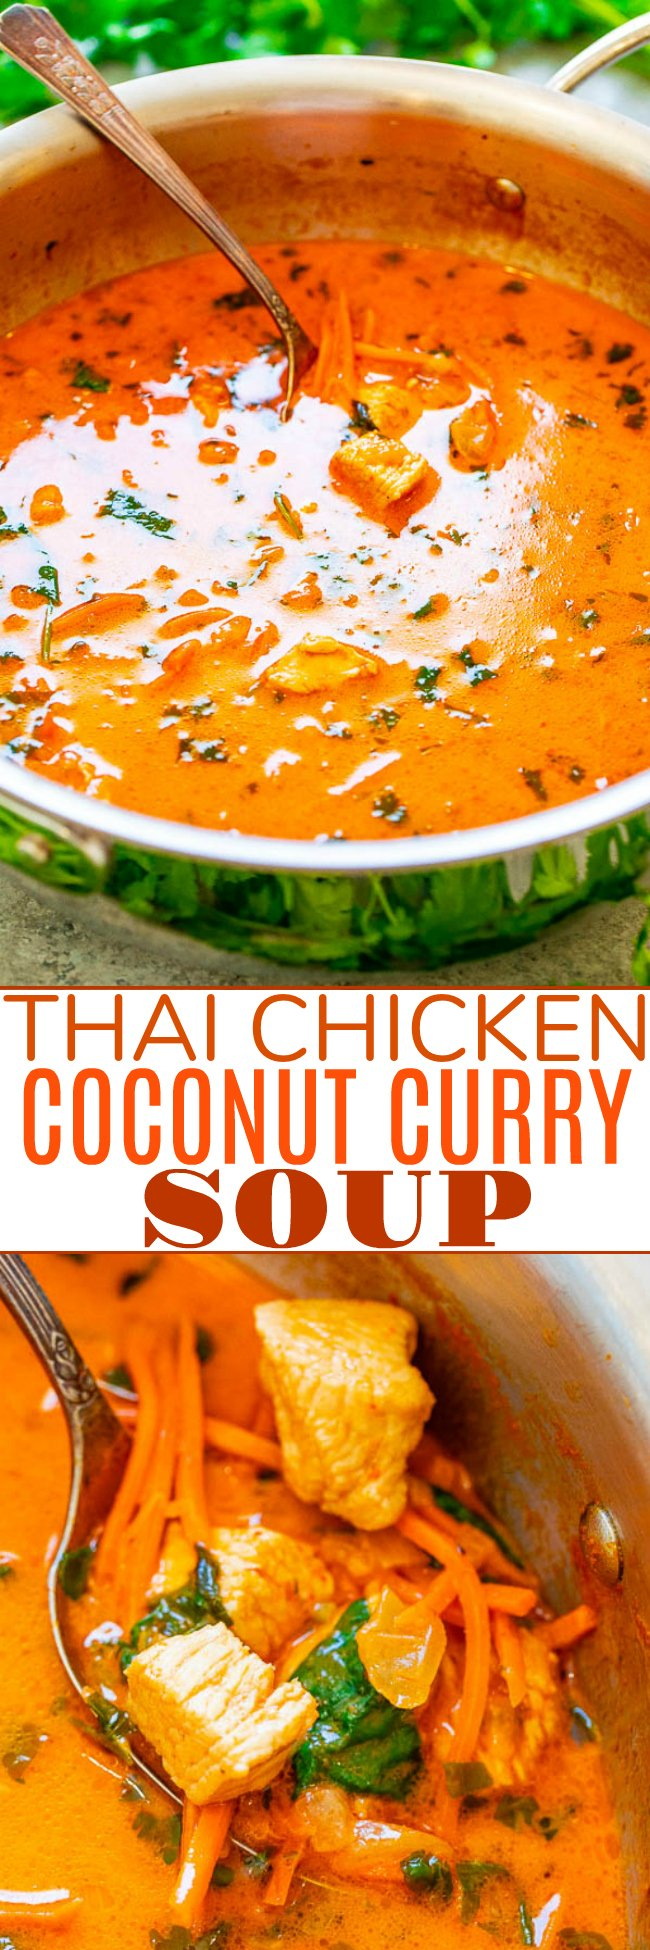 Thai Chicken Coconut Curry Soup - An EASY one pot soup that's ready in 20 minutes and is layered with so many fabulous Thai flavors!! Tastes BETTER than from a Thai restaurant!! It's hearty yet HEALTHY comfort food that tastes AMAZING!!